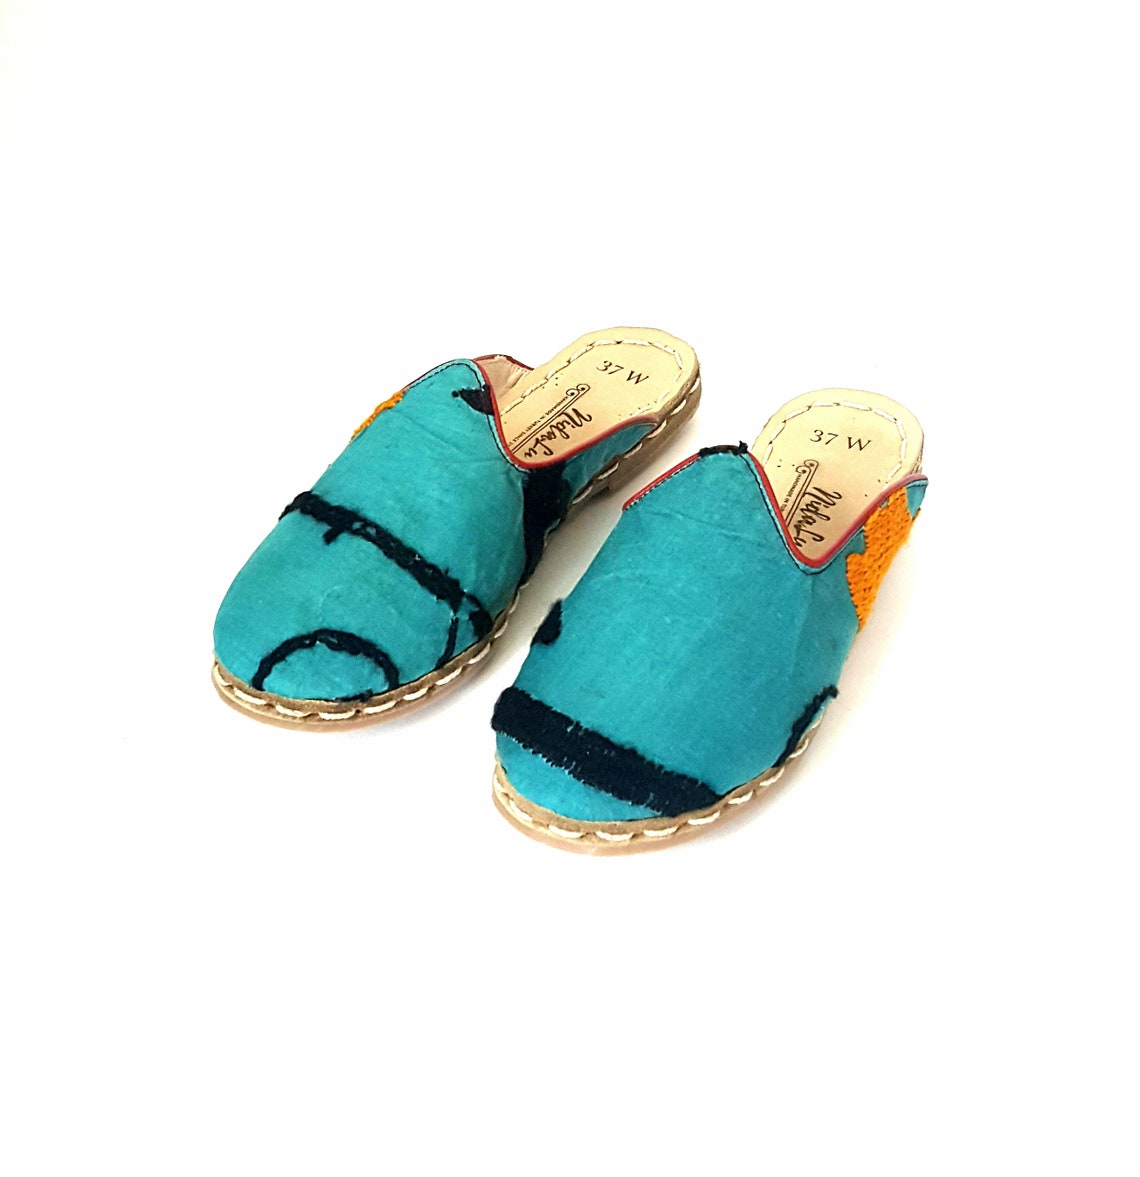 In Stock One Of A Kind Handmade Vintage Suzani Mules Slippers Organic Dye  Leather Flat Slip Ons Women Loafers